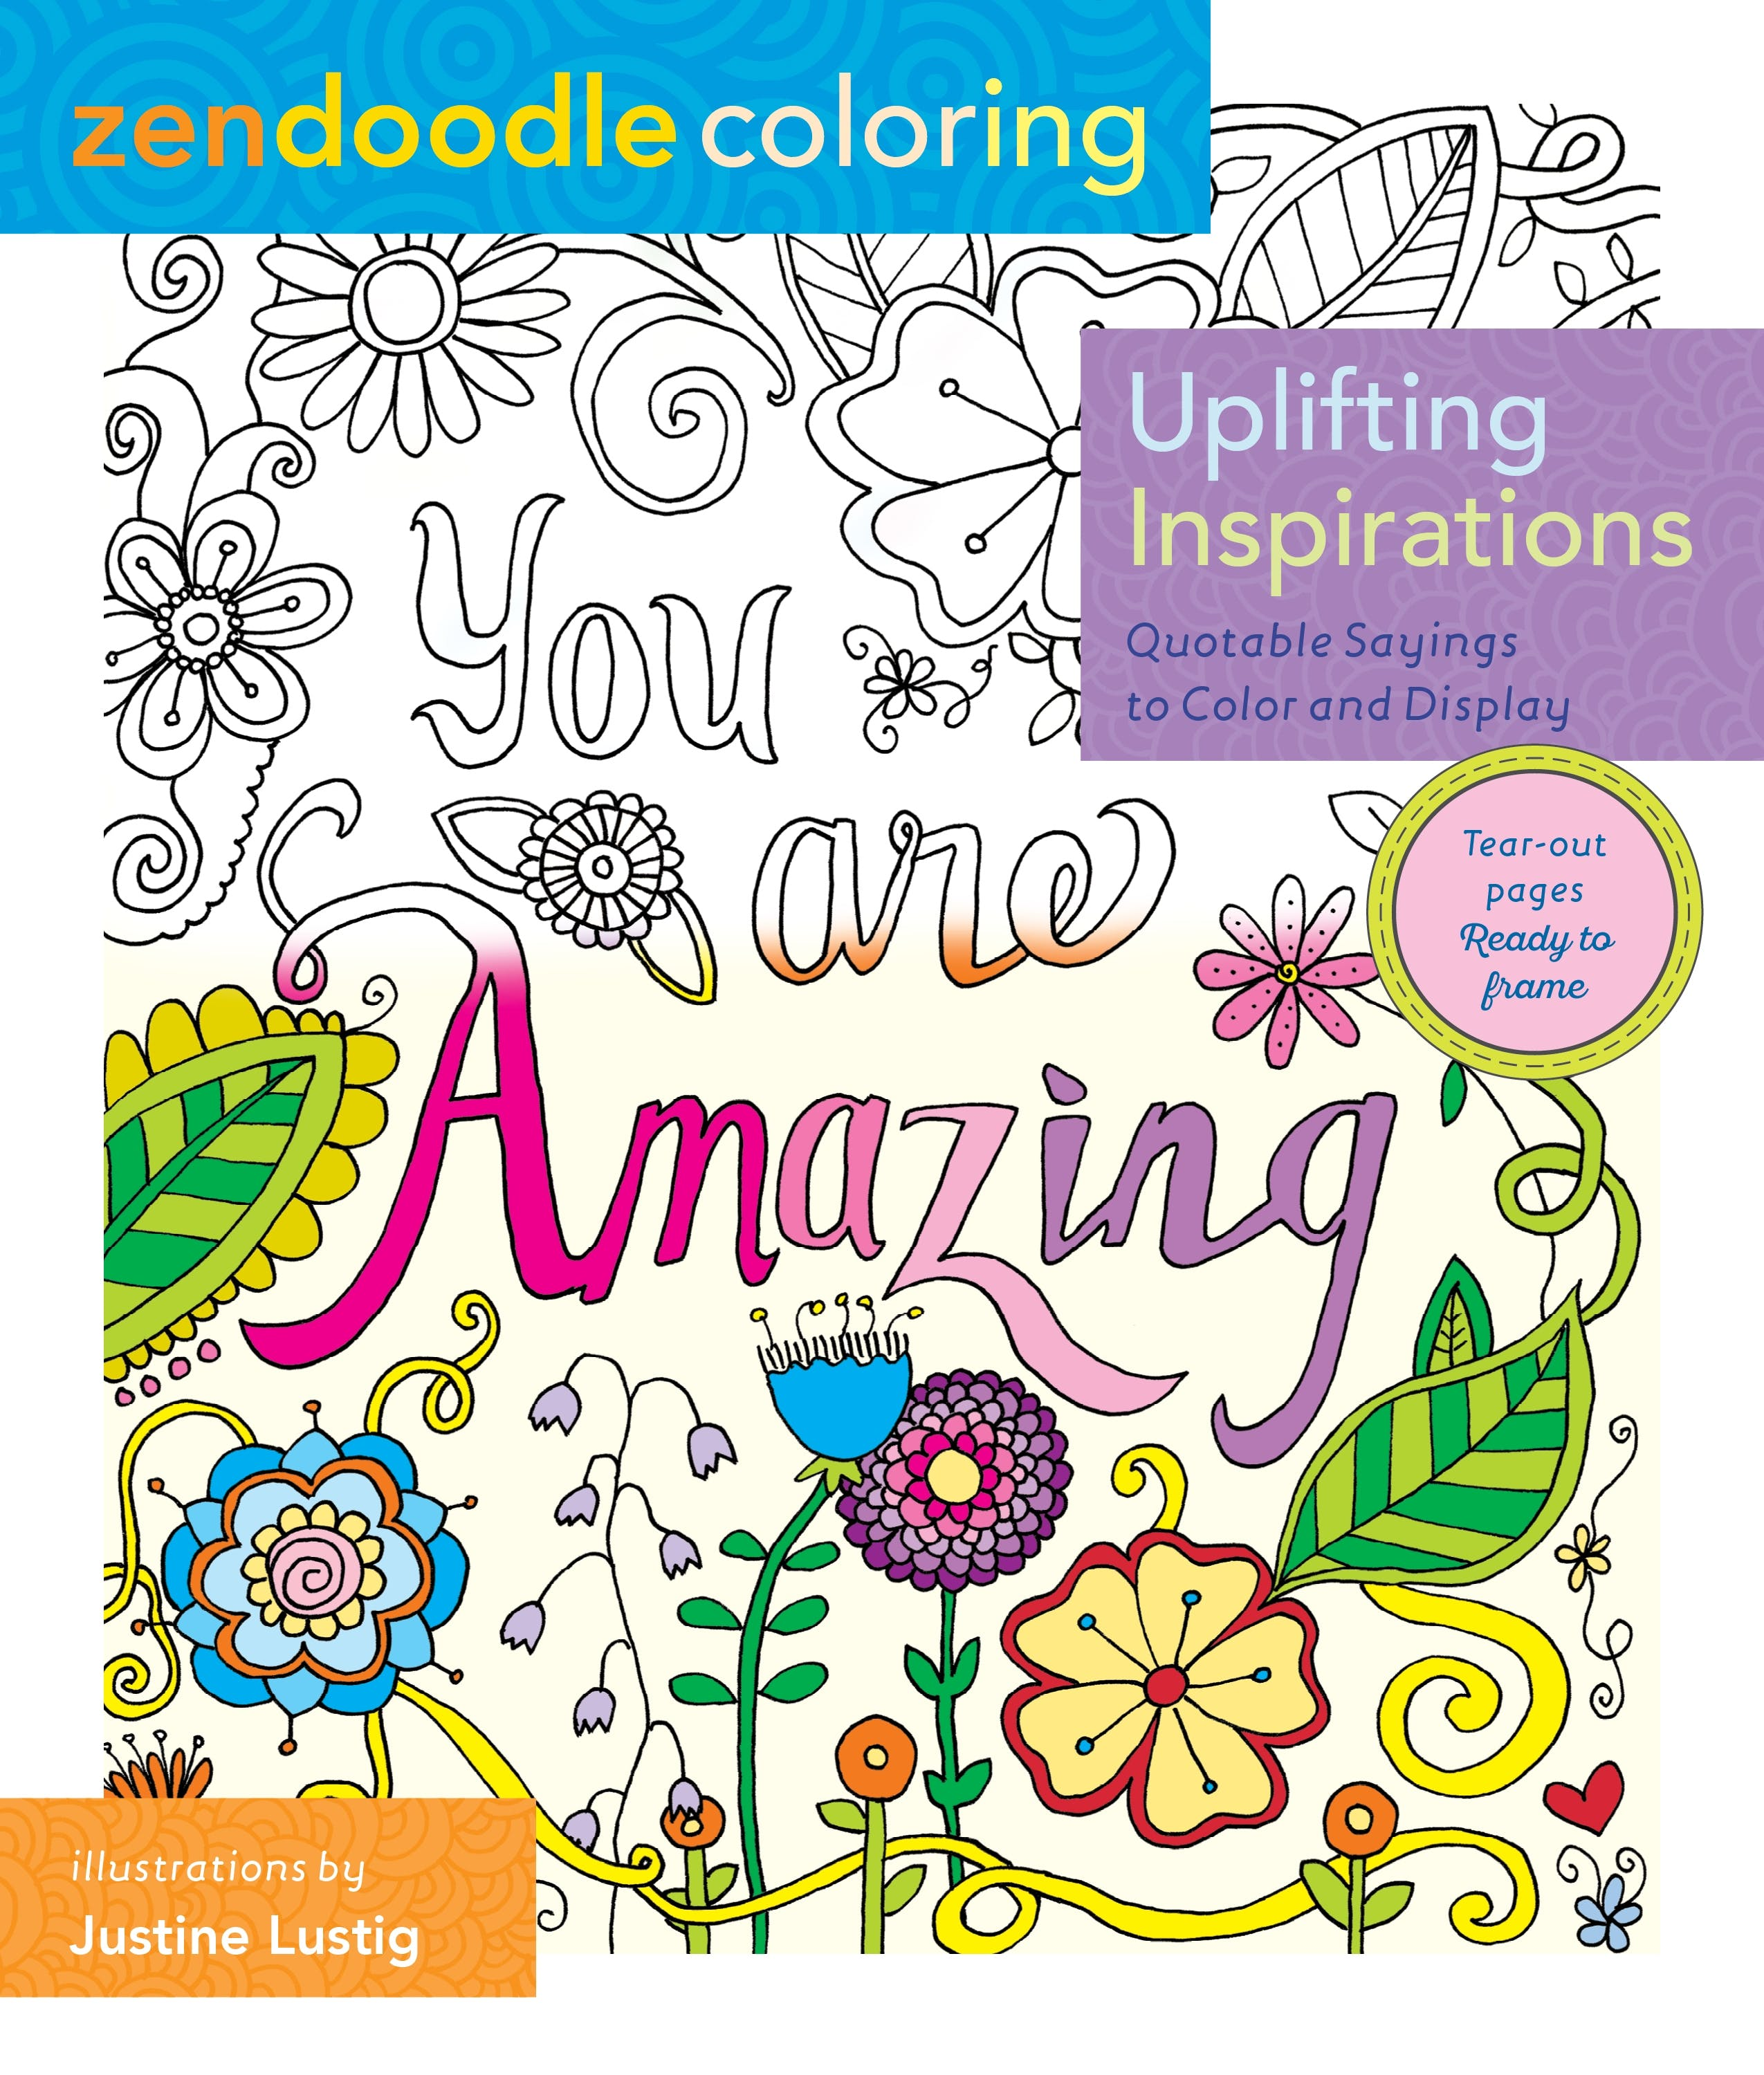 Image of Zendoodle Coloring: Uplifting Inspirations